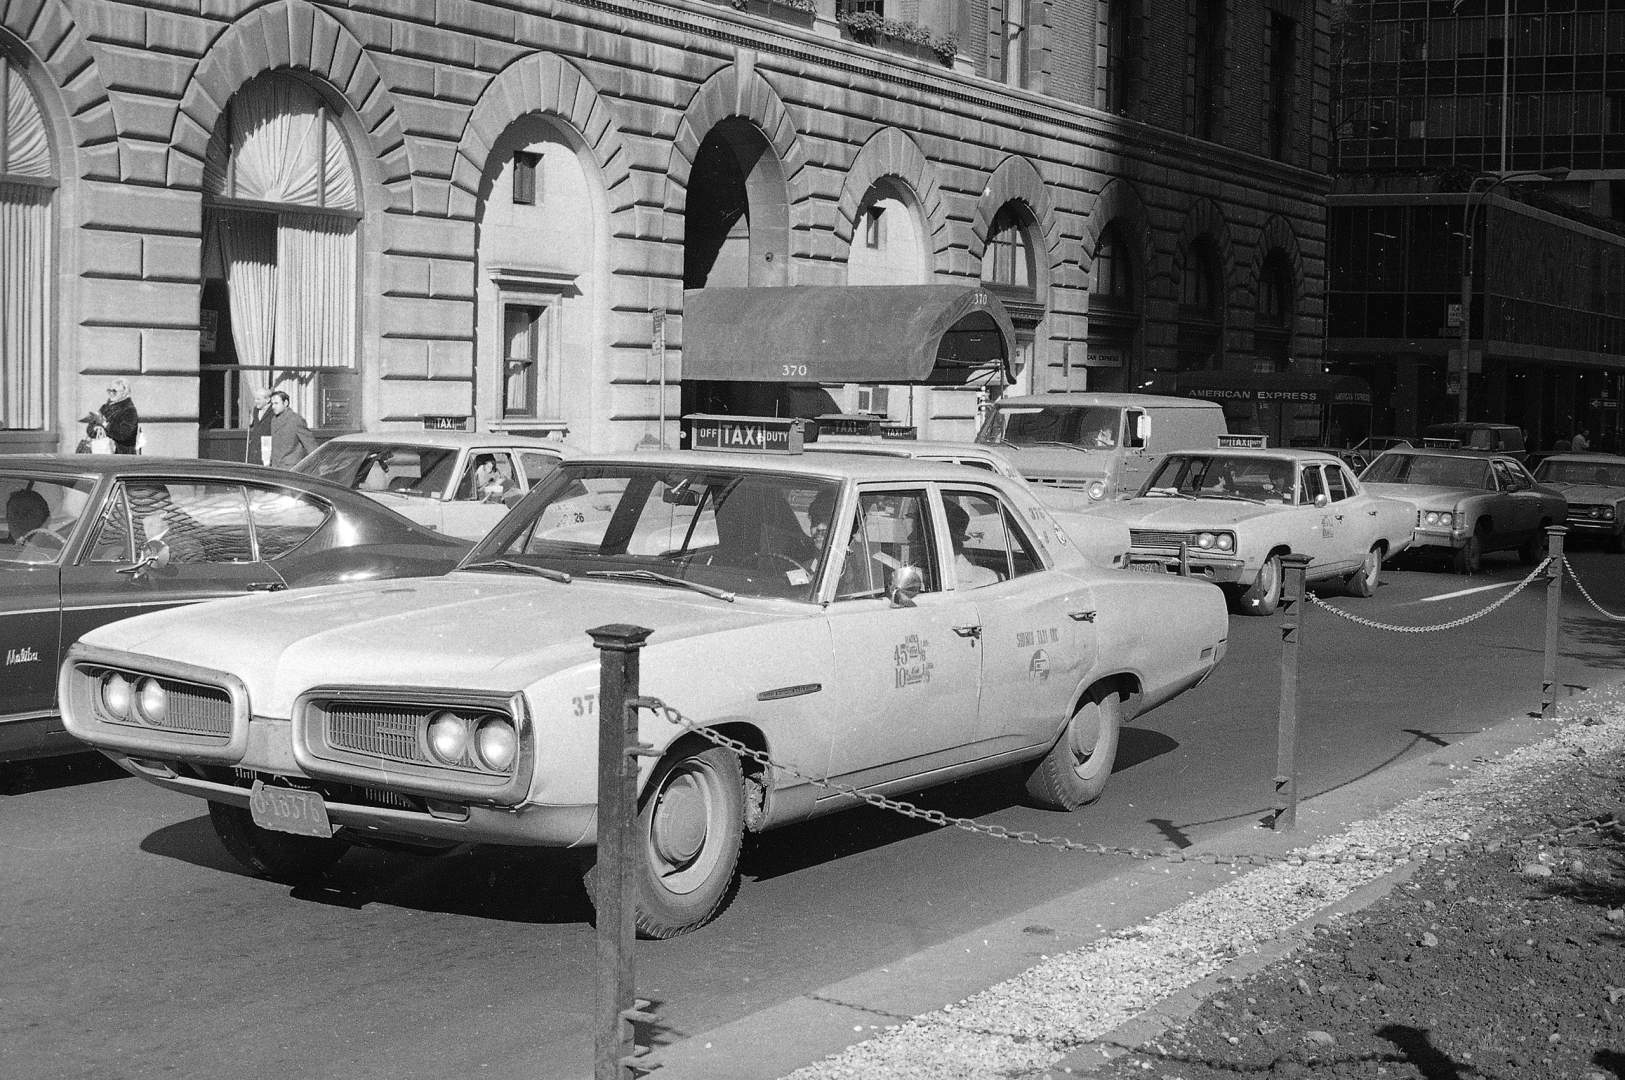 Watchf Associated Press Domestic News  New York United States APHS56514 NYC TAXI 1970